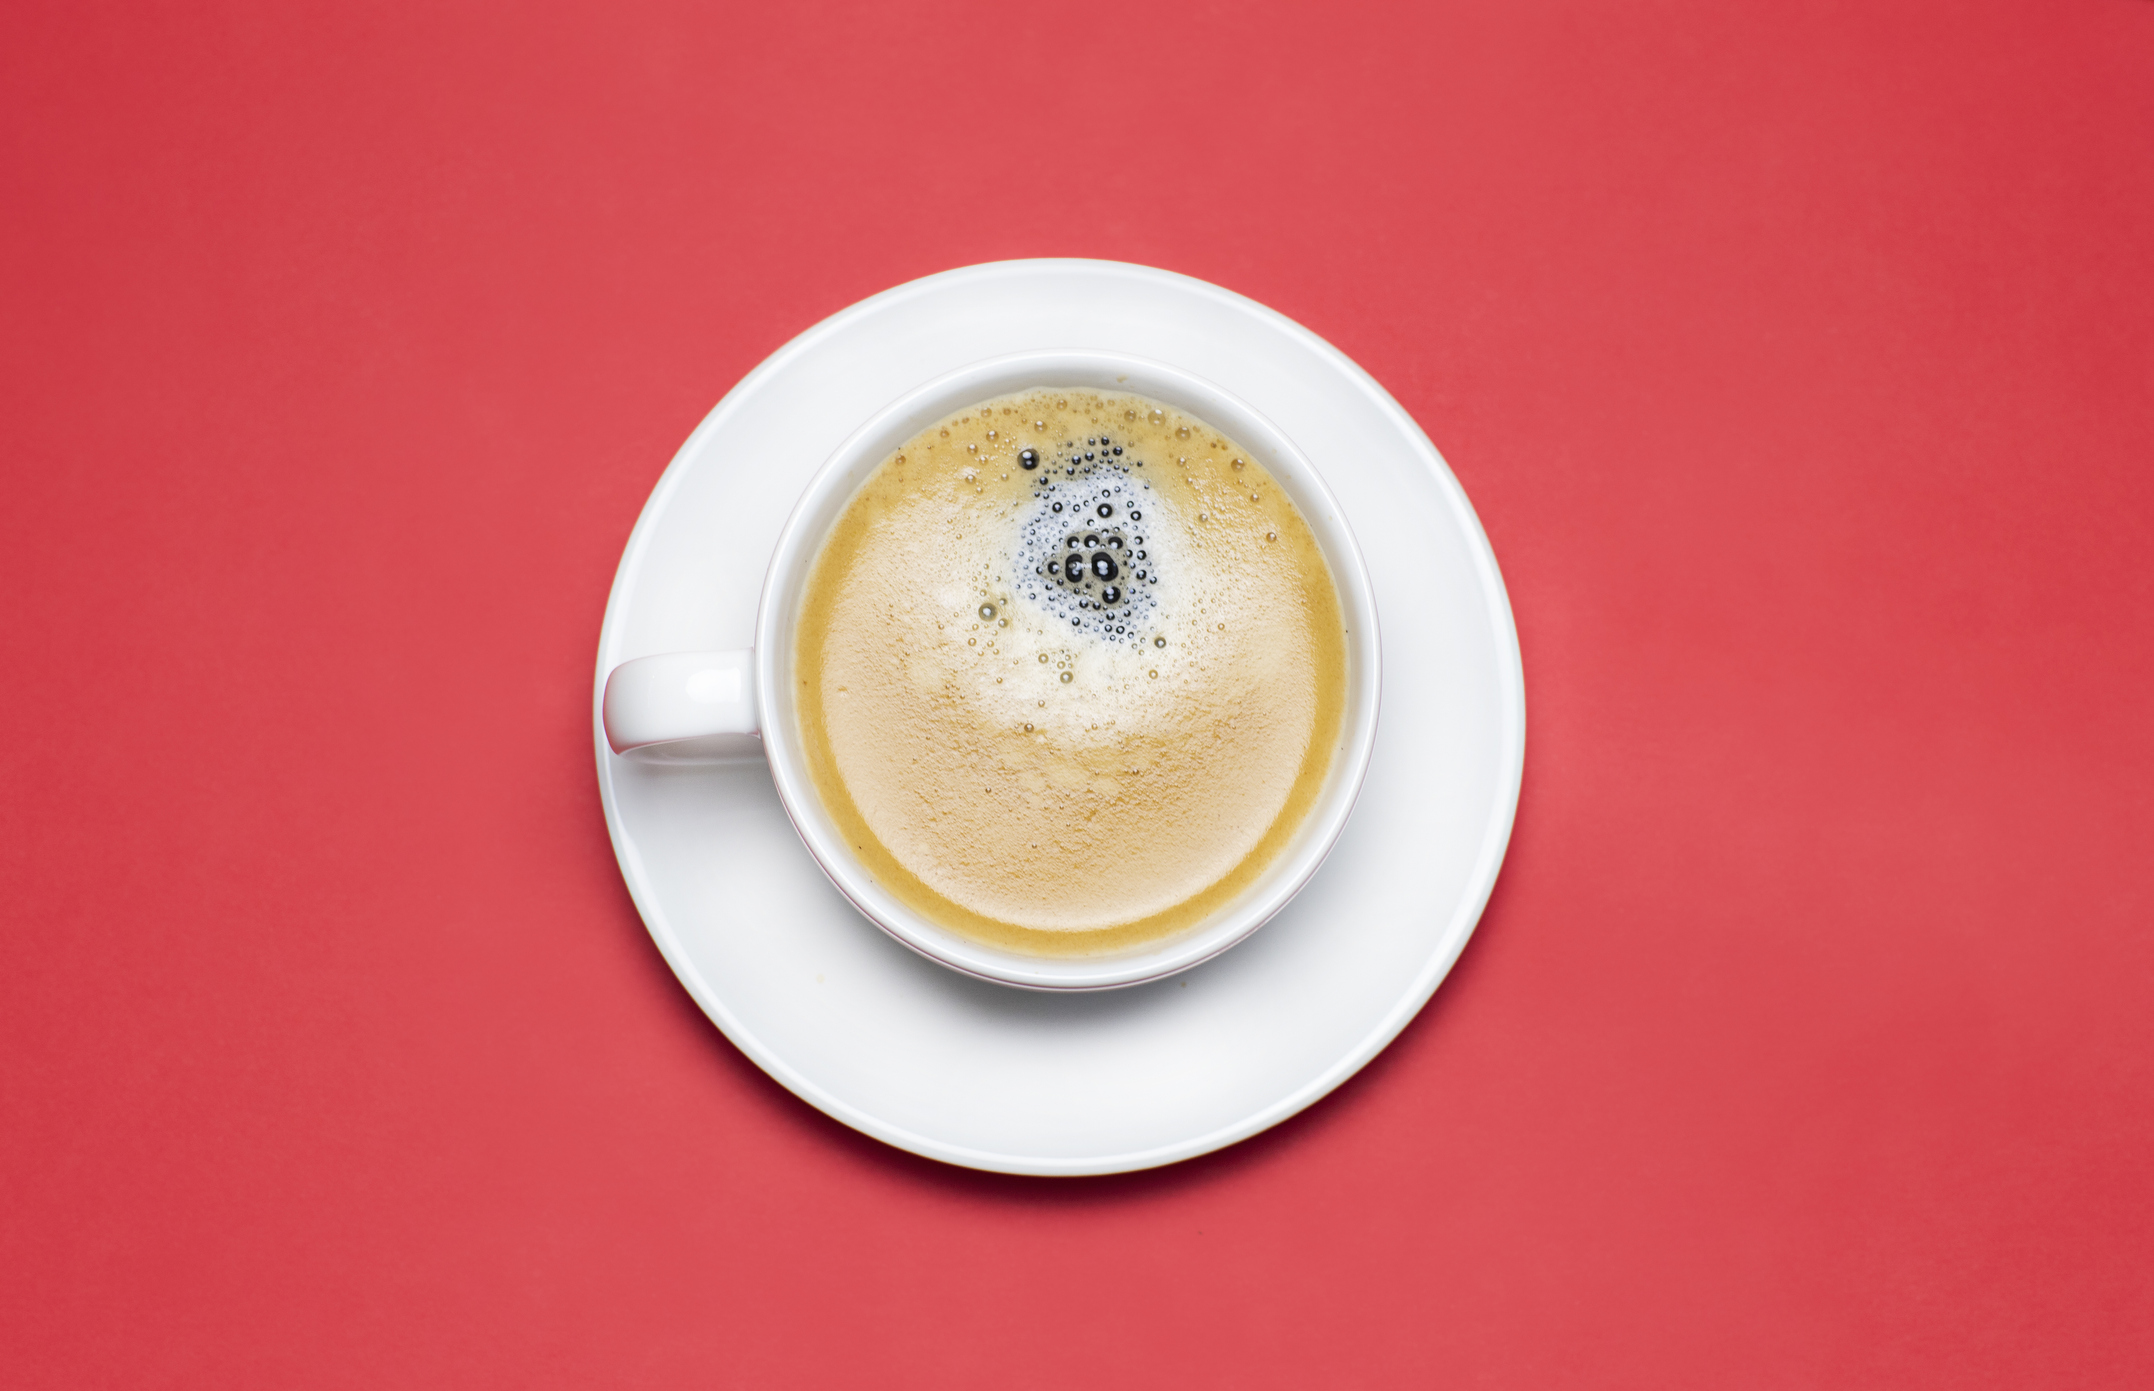 How Do You Take Your Coffee? Filtered, Not Unfiltered, For Cardiovascular Disease photo